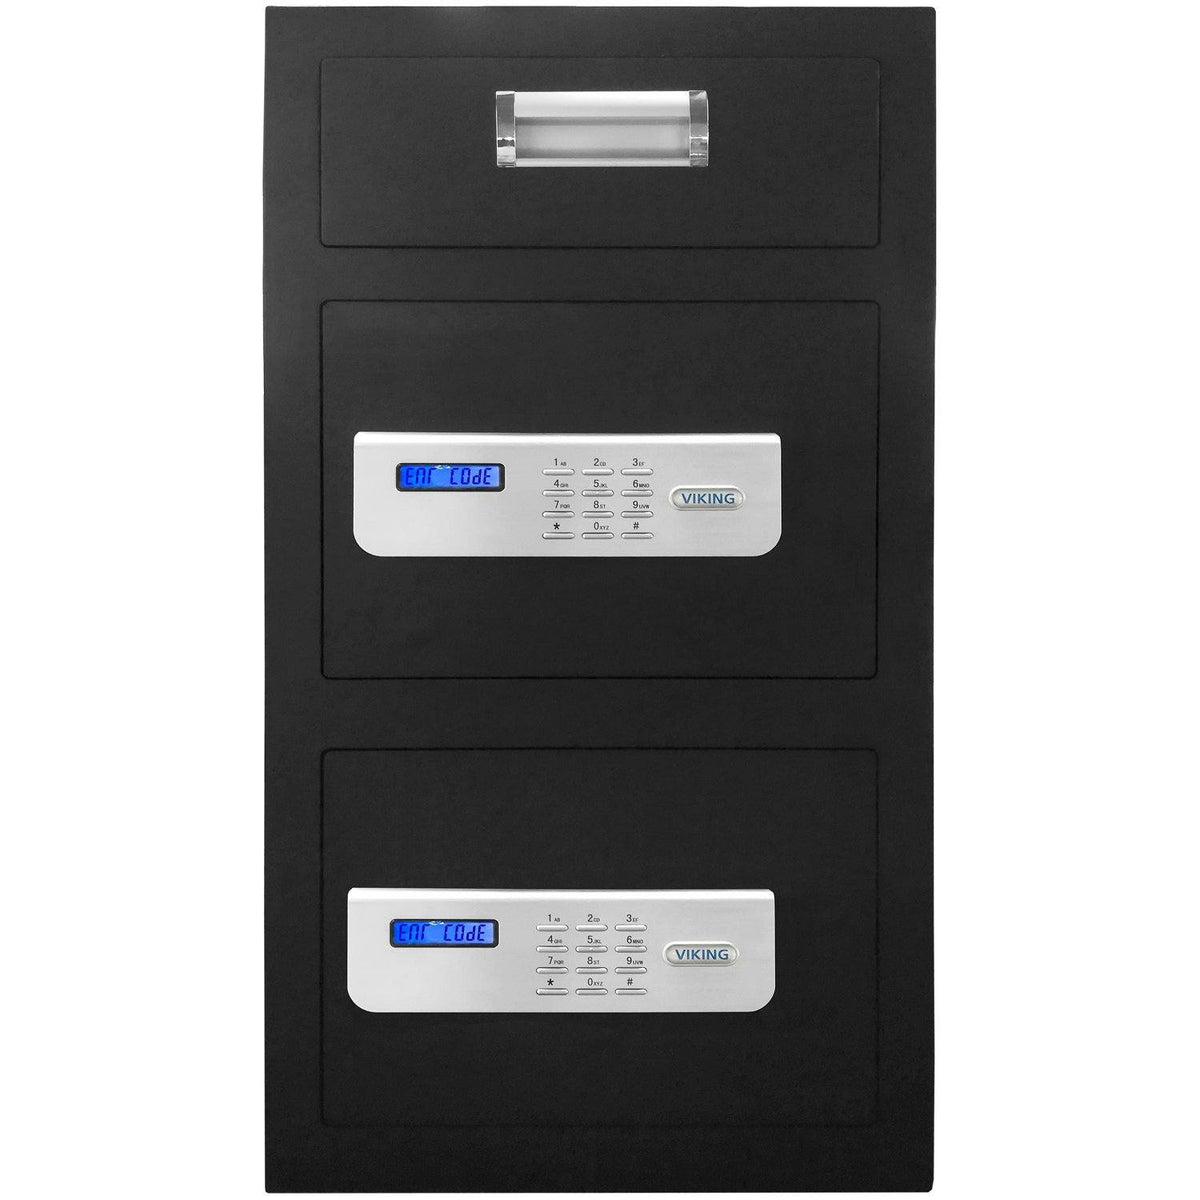 Viking VS-70DS Double Door Depository Safe with Electronic Locks